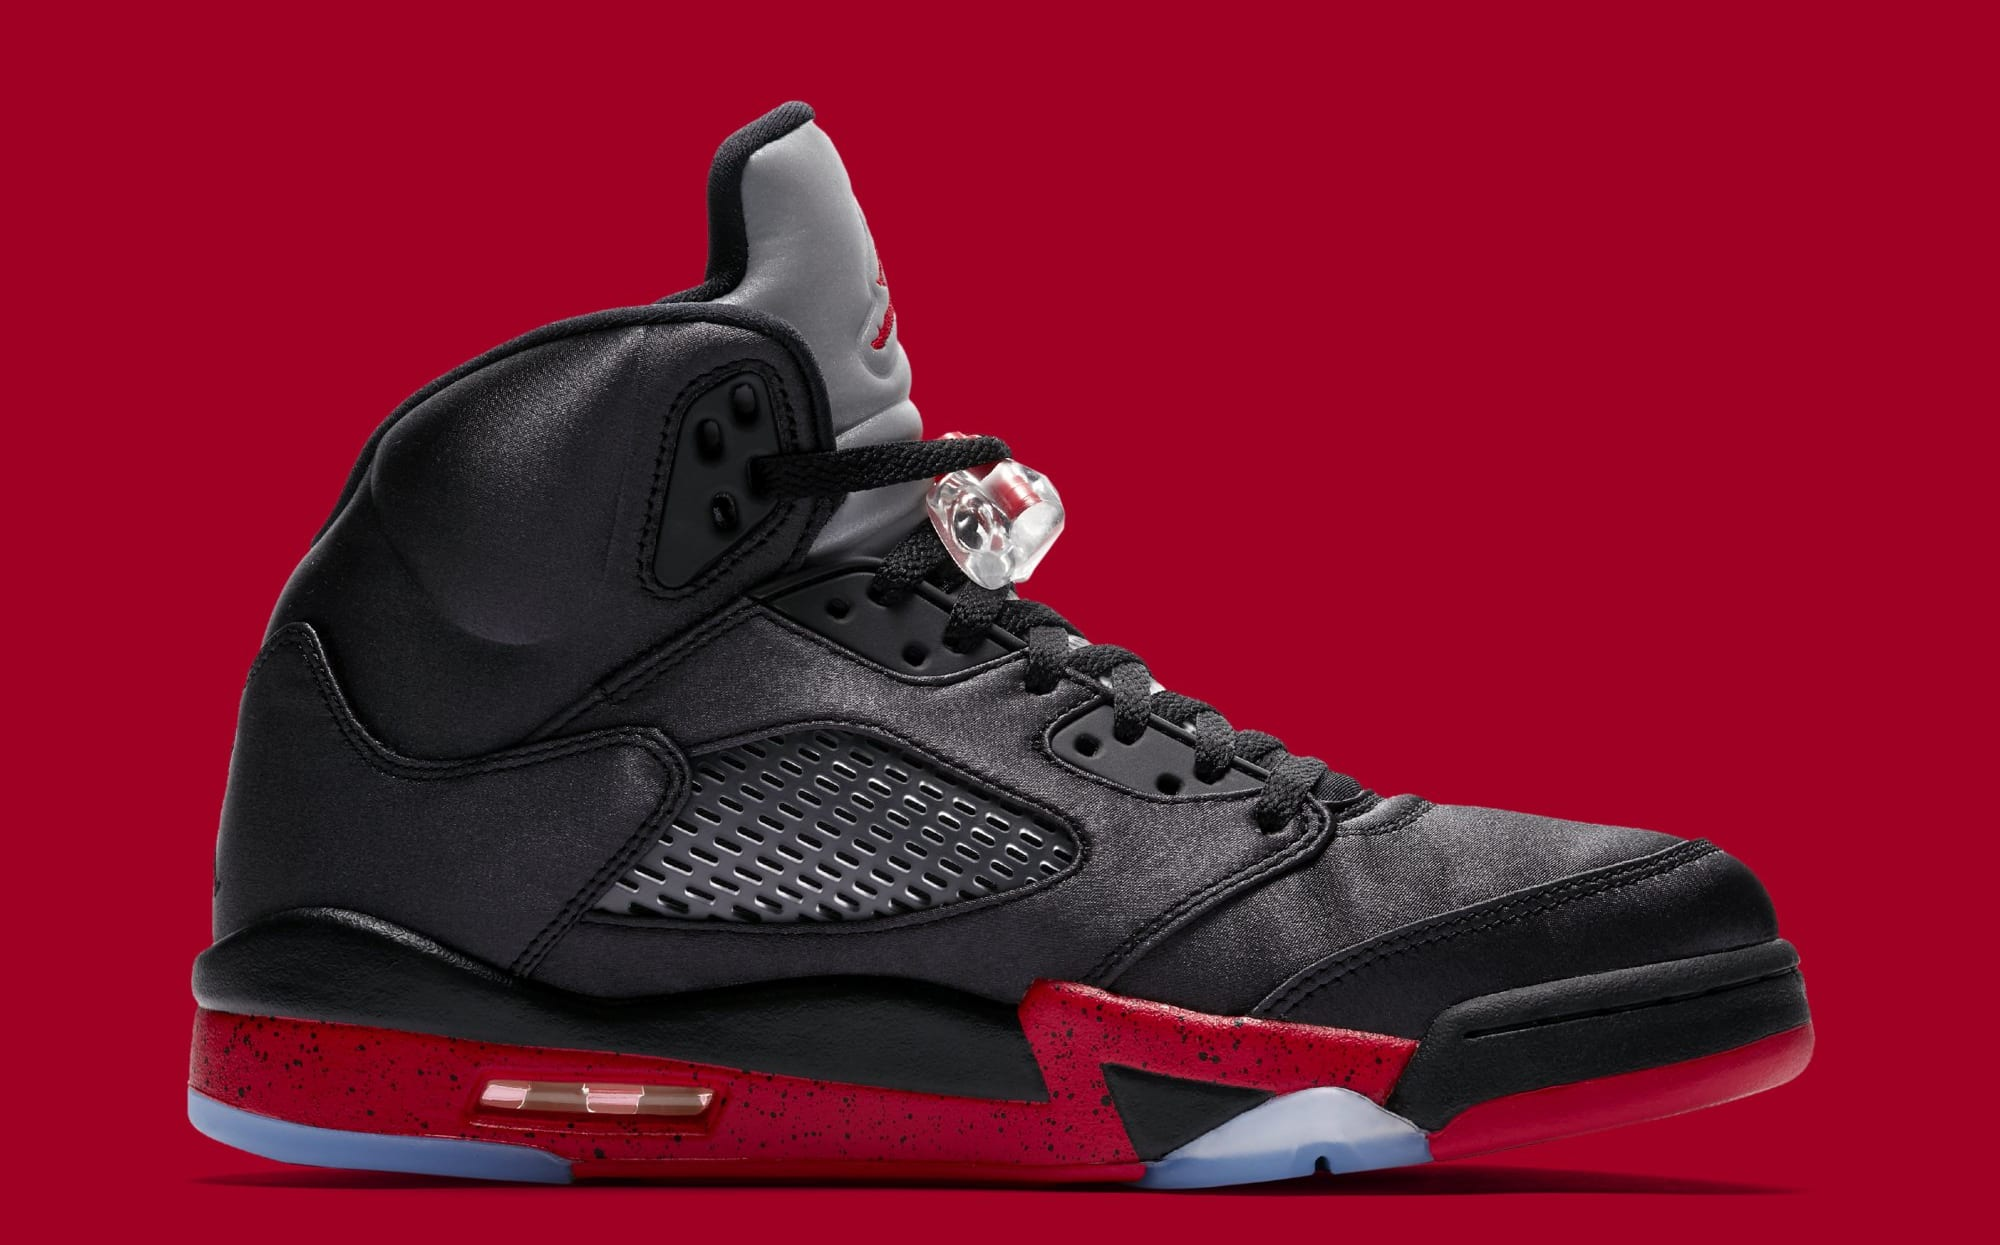 brand new 6546c 012e6 Air Jordan 5 'Black/University Red' Release Date | Sole ...